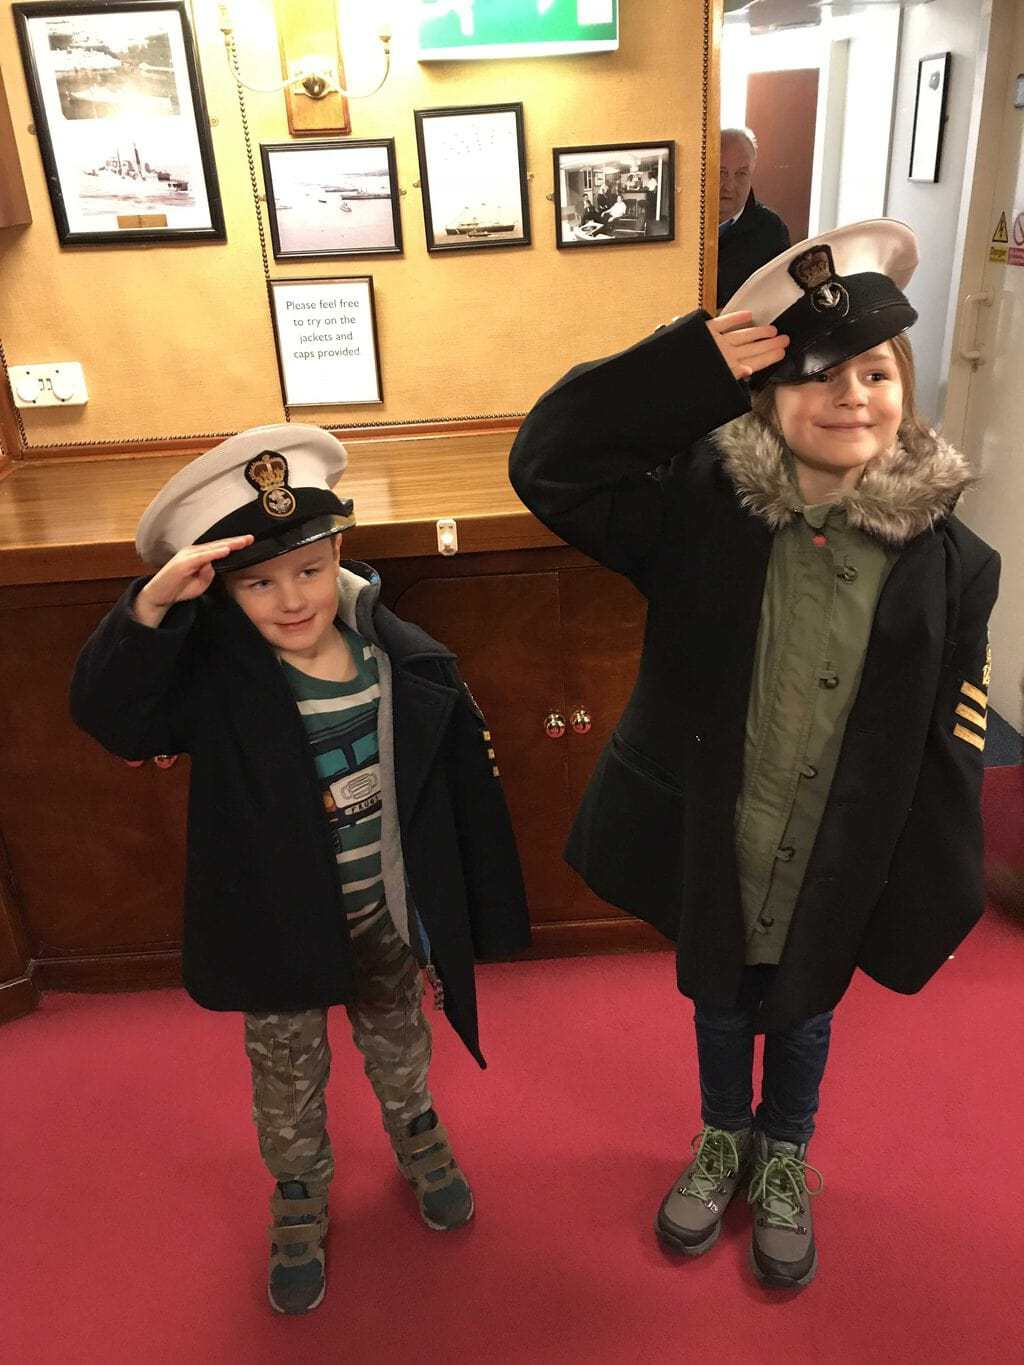 Visiting Royal Yacht Britannia as part of the 7 Places to Visit on a Family City Break in Edinburgh www.minitravellers.co.uk